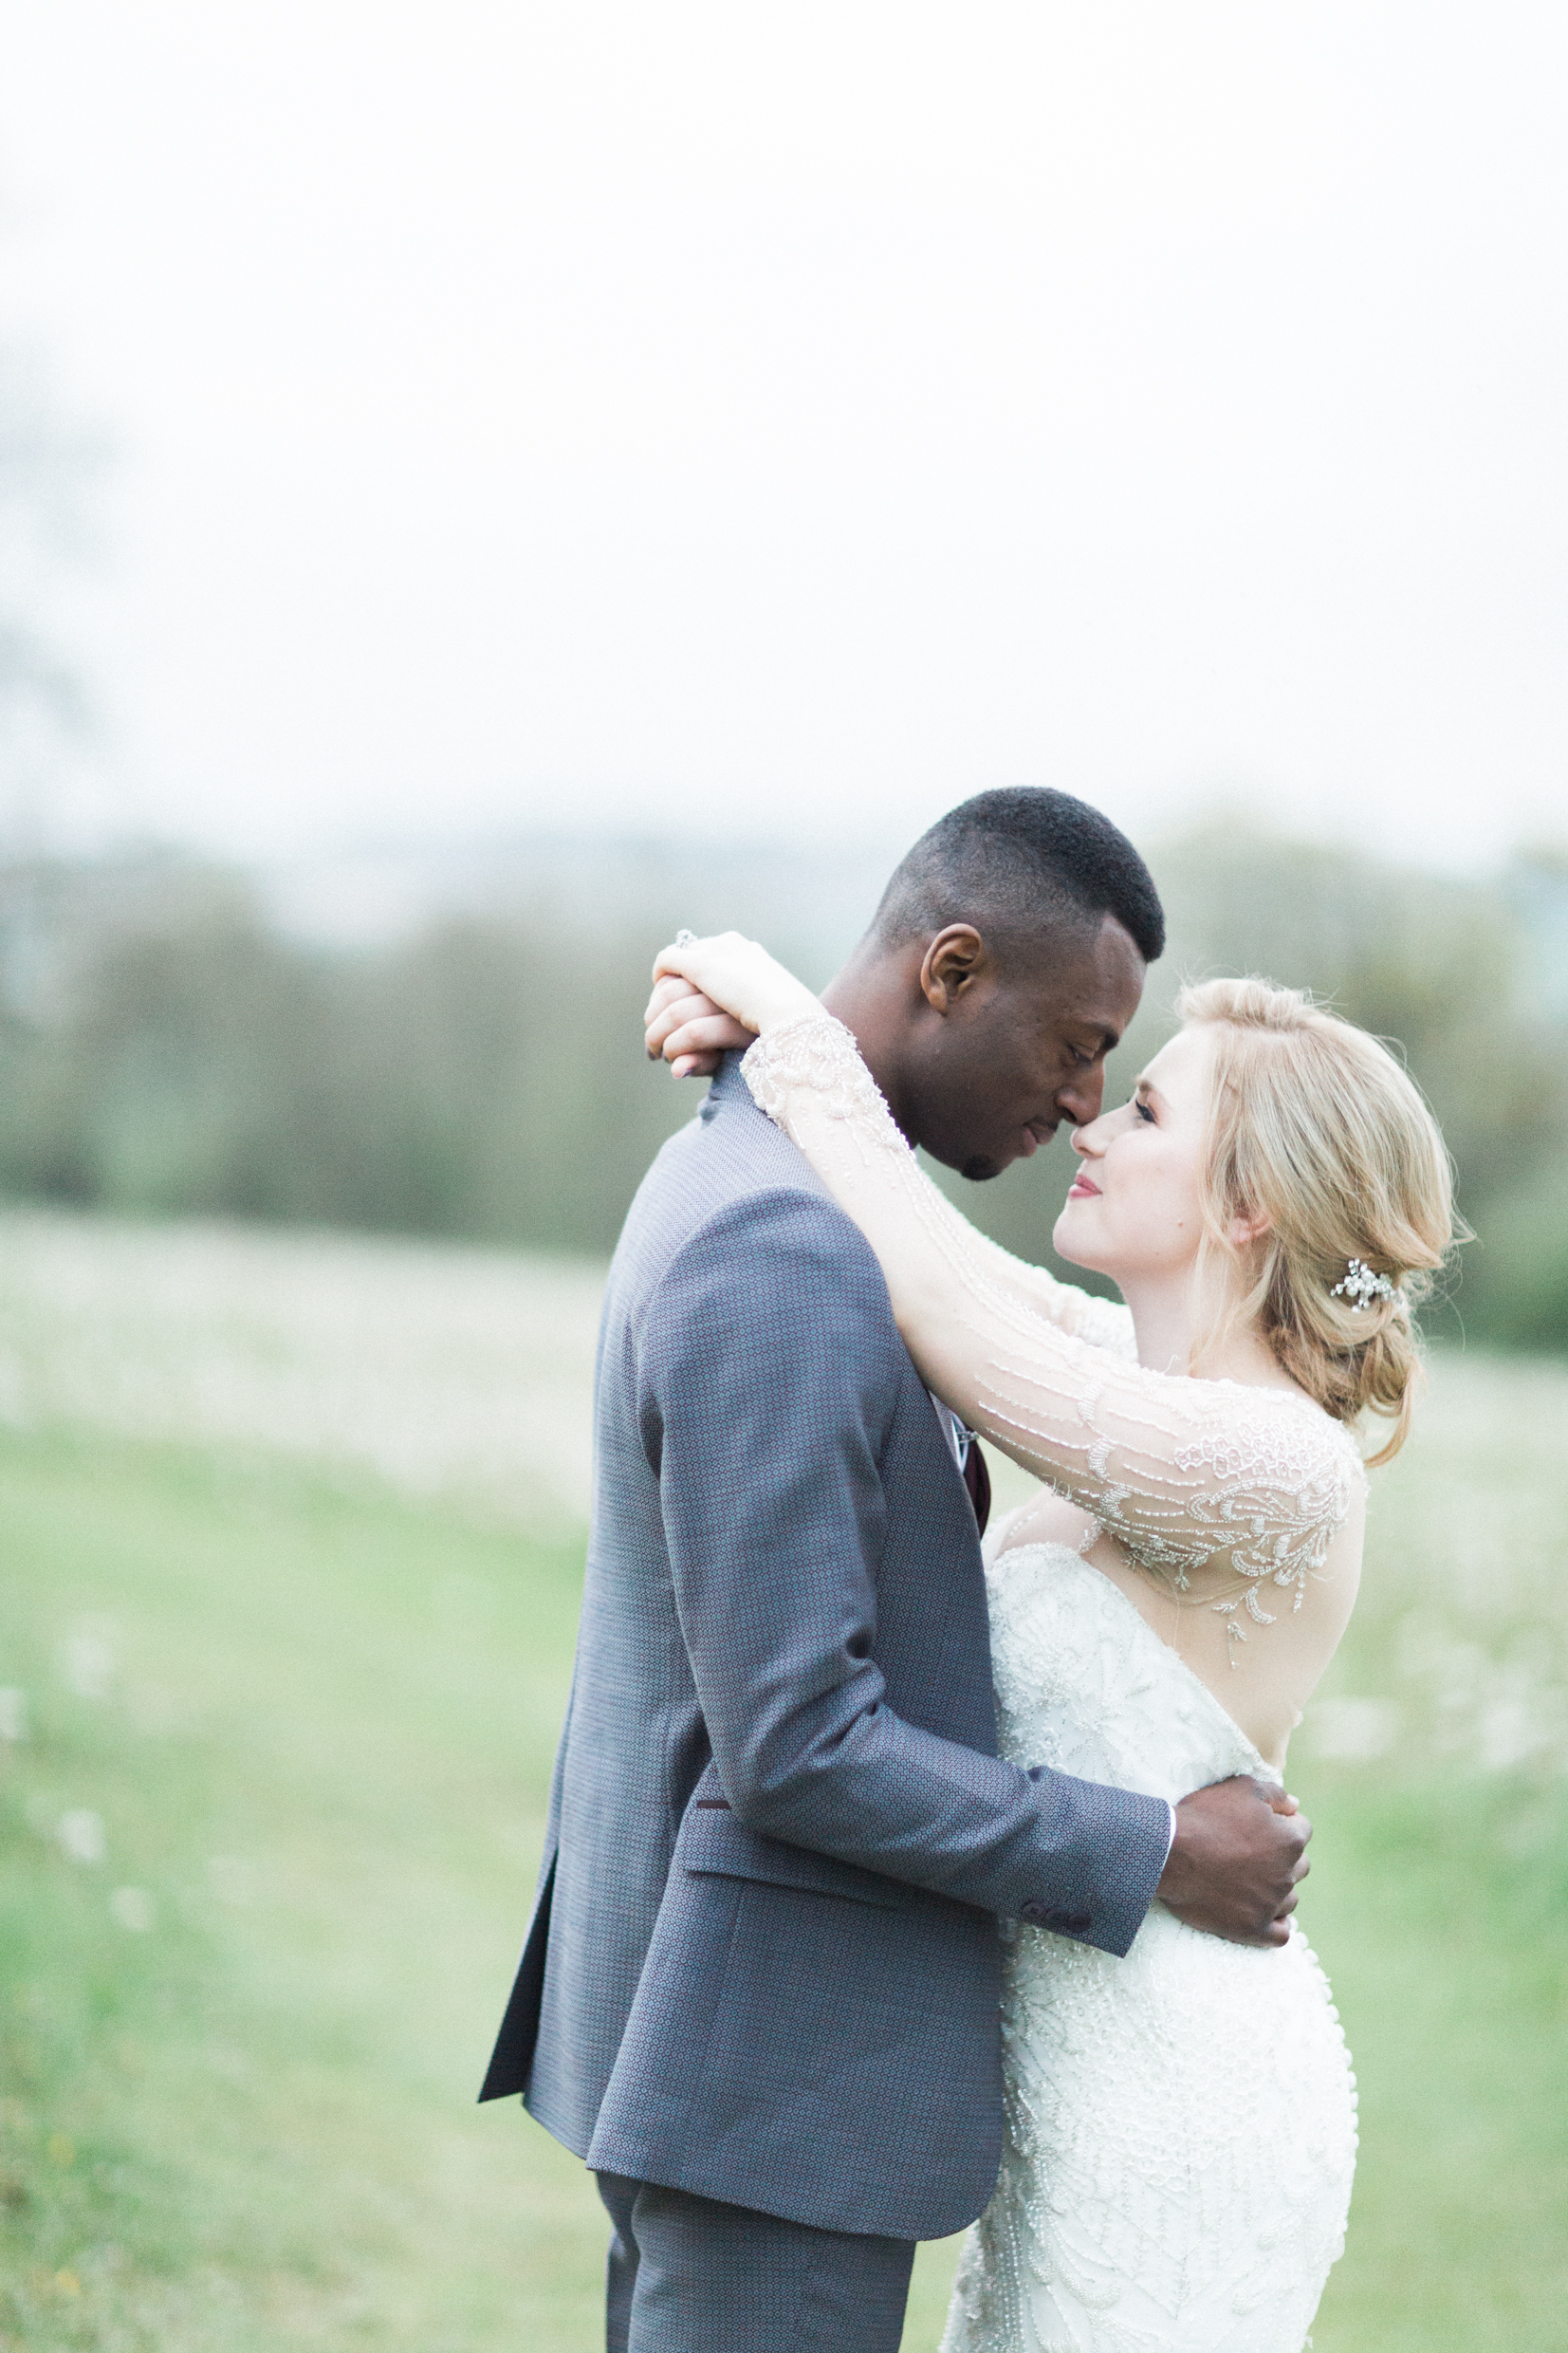 haley & jermaine-44.jpg